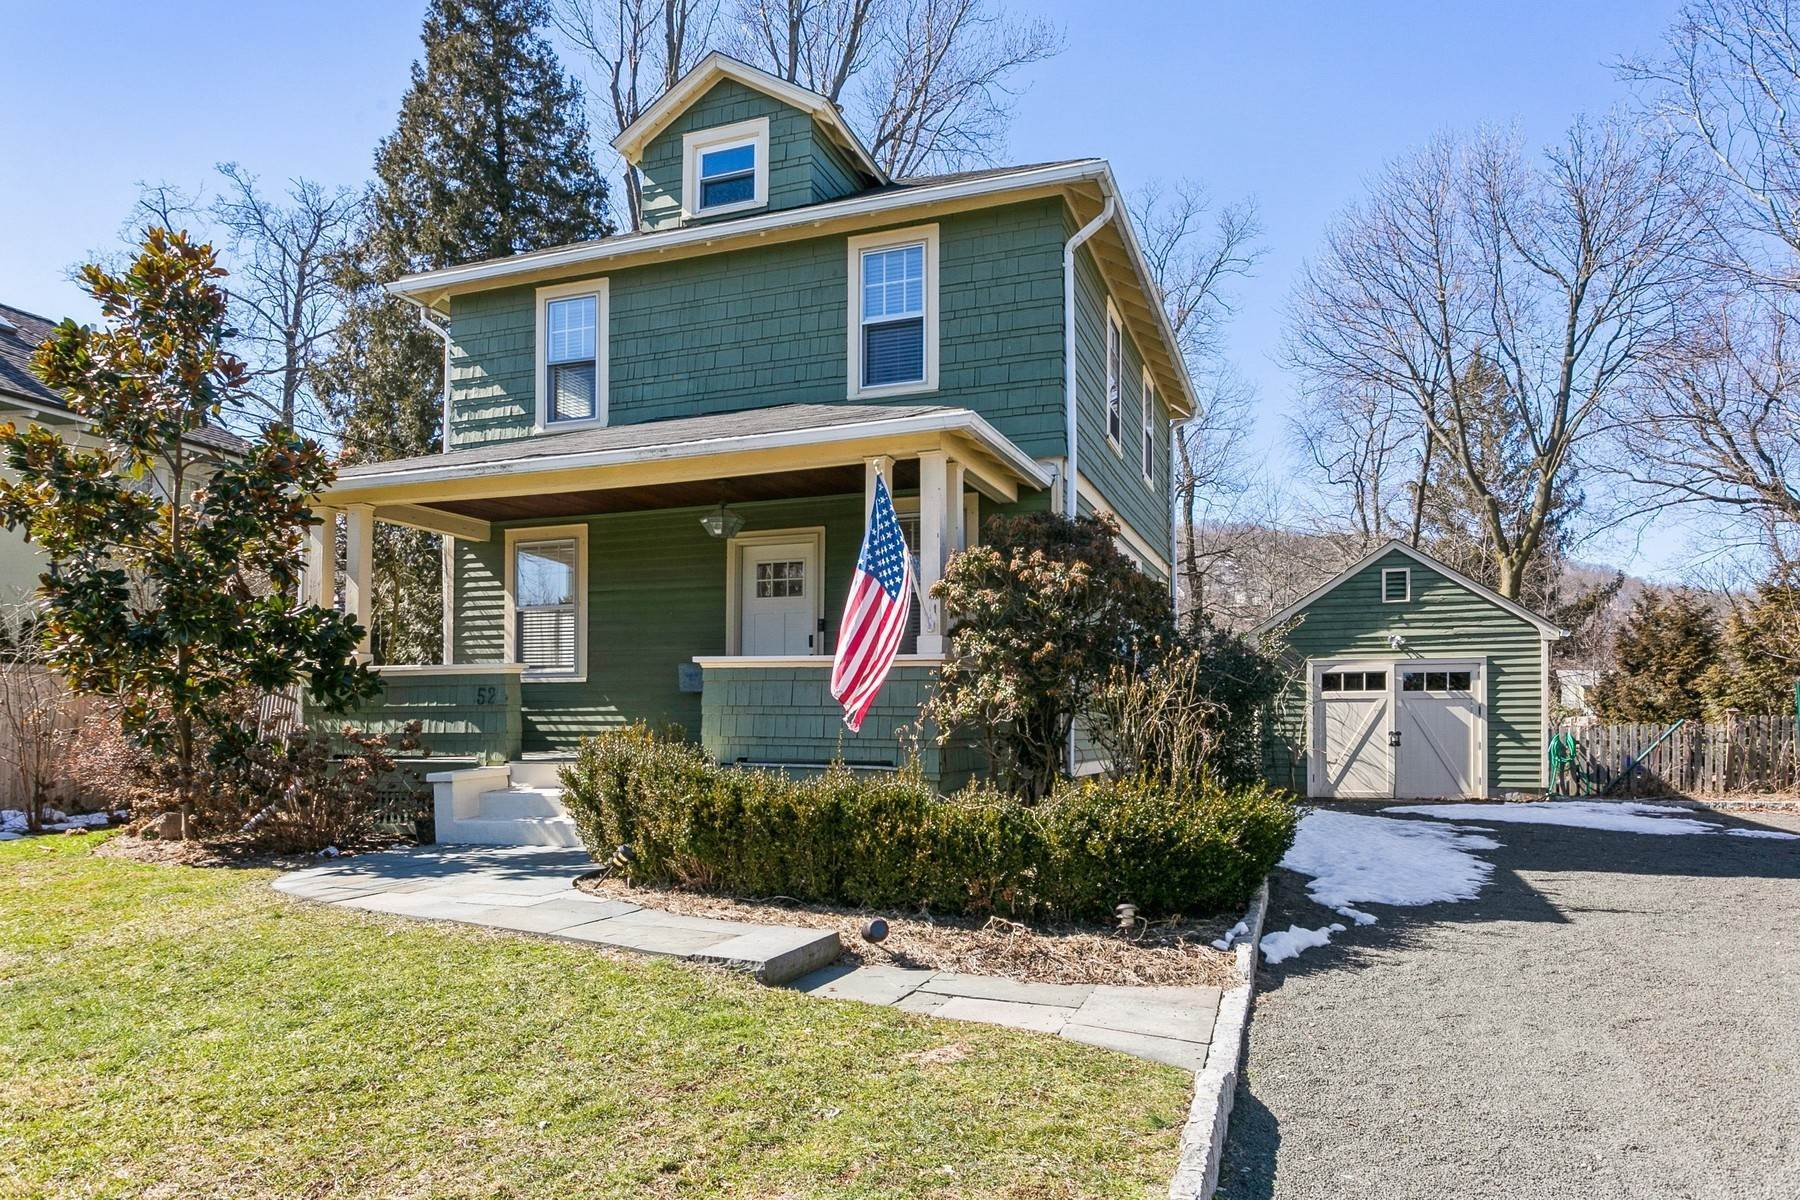 Single Family Homes for Sale at Village Colonial 52 Glen Byron Avenue South Nyack, New York 10960 United States